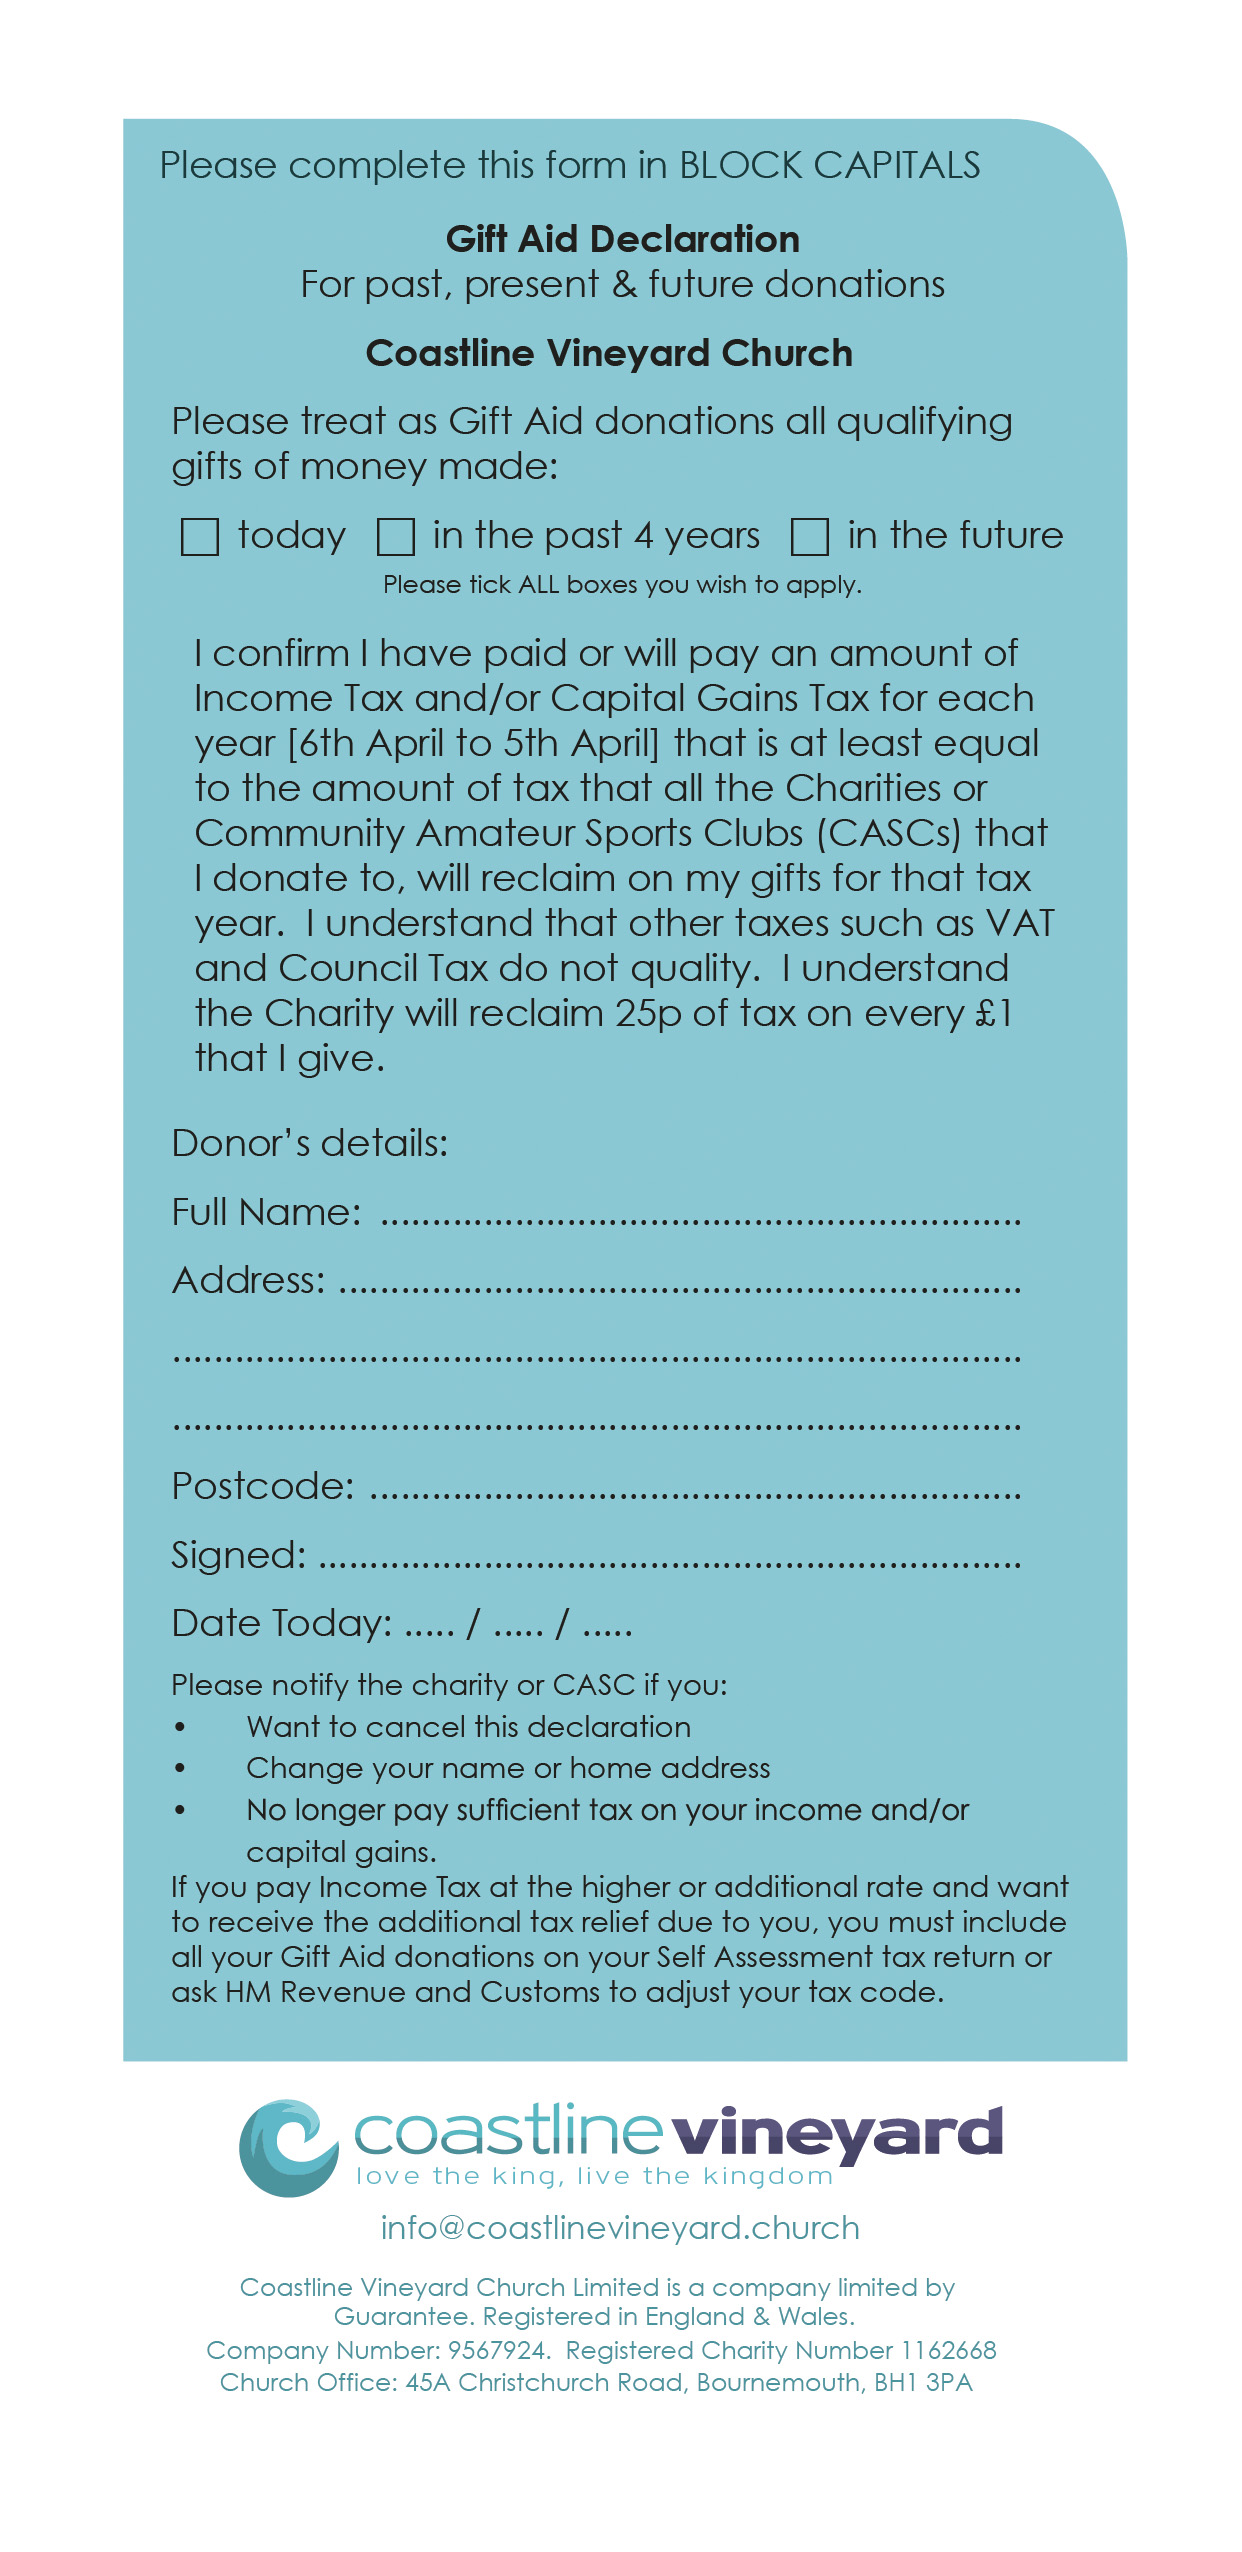 Gift aid claim reference number fax word template free lease coastline vineyard church bournemouth give giftaid give gift aid claim reference number gift aid claim reference number negle Image collections